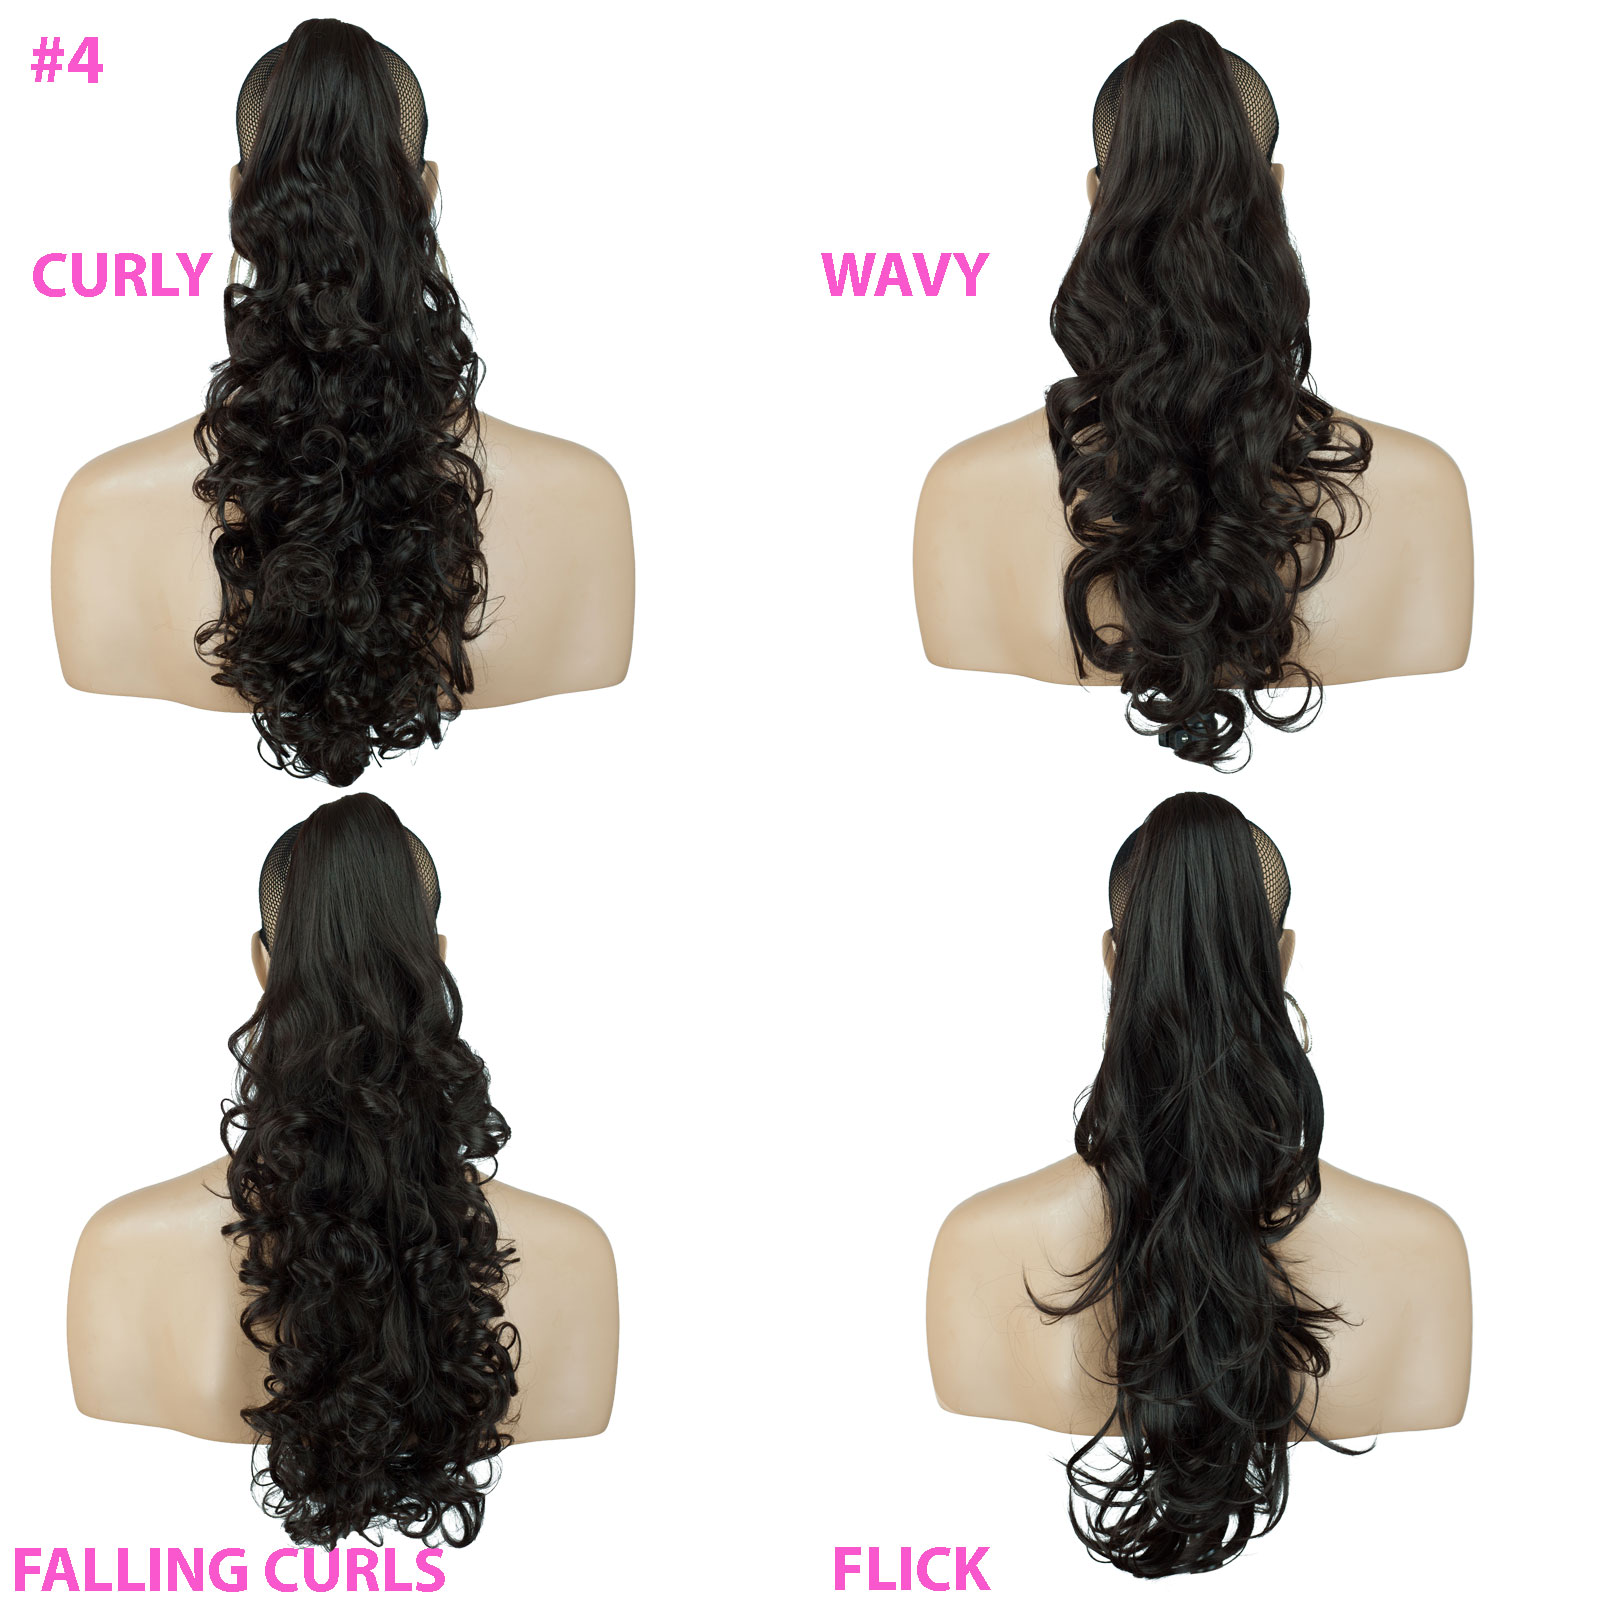 PONYTAIL-Clip-In-On-Hair-Extensions-Dark-Brown-4-REVERSIBLE-4-Styles-Claw-Clip miniature 8